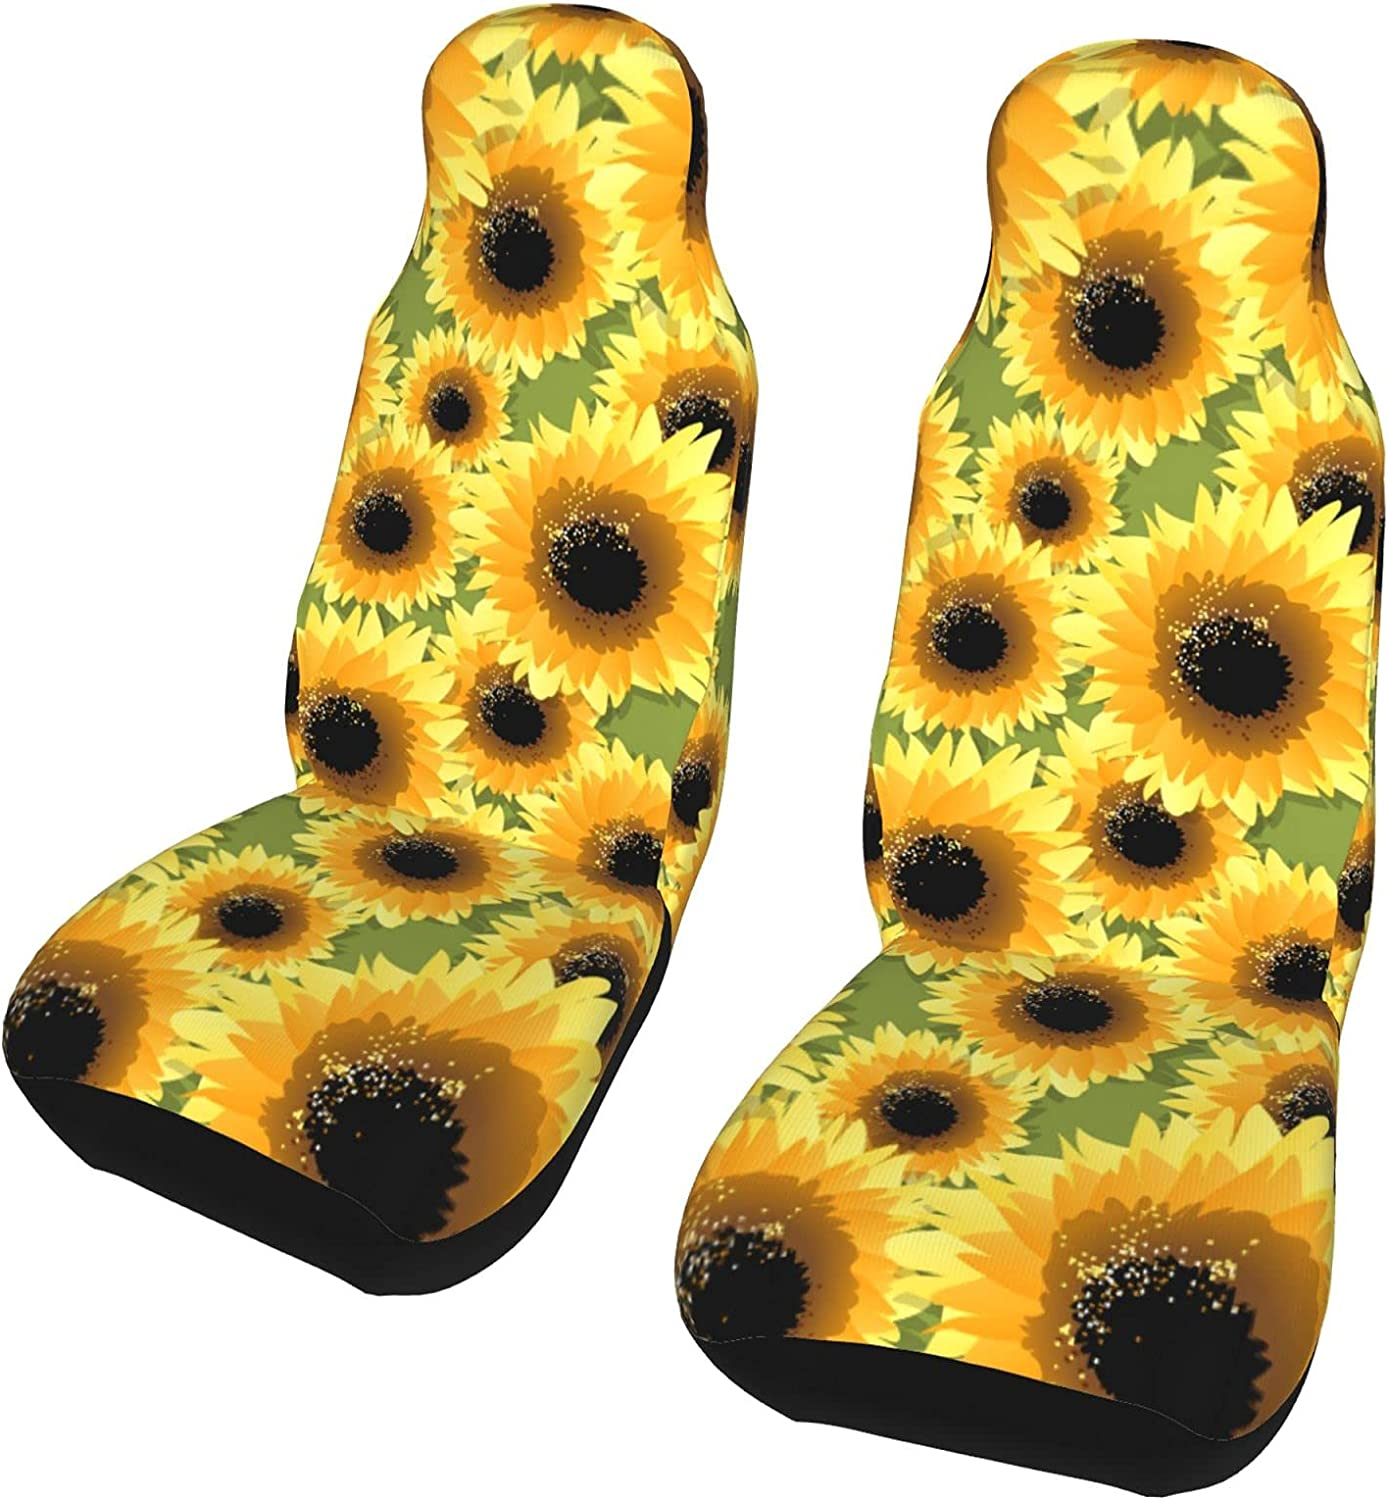 Non-Slip Universal Sunflower 2pack Car Full Our shop most Department store popular Set Seat Easy Covers